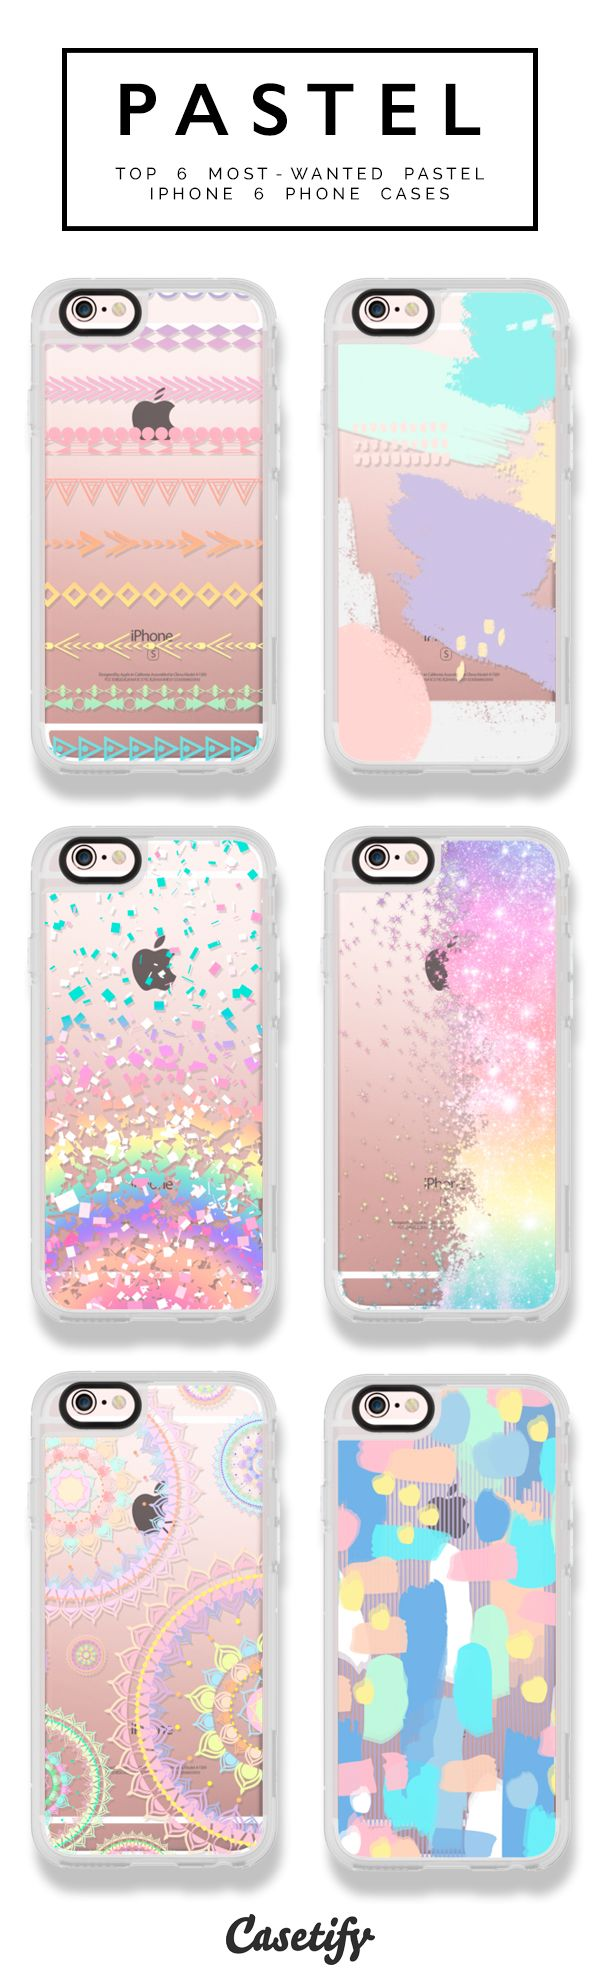 pinterest: @jaidyngrace 6 most wanted pastel iPhone 6 protective phone cases | Click through to see more pastel color palette iphone case ideas >>> https://www.casetify.com/artworks/ZwiXLUrvly | @casetify